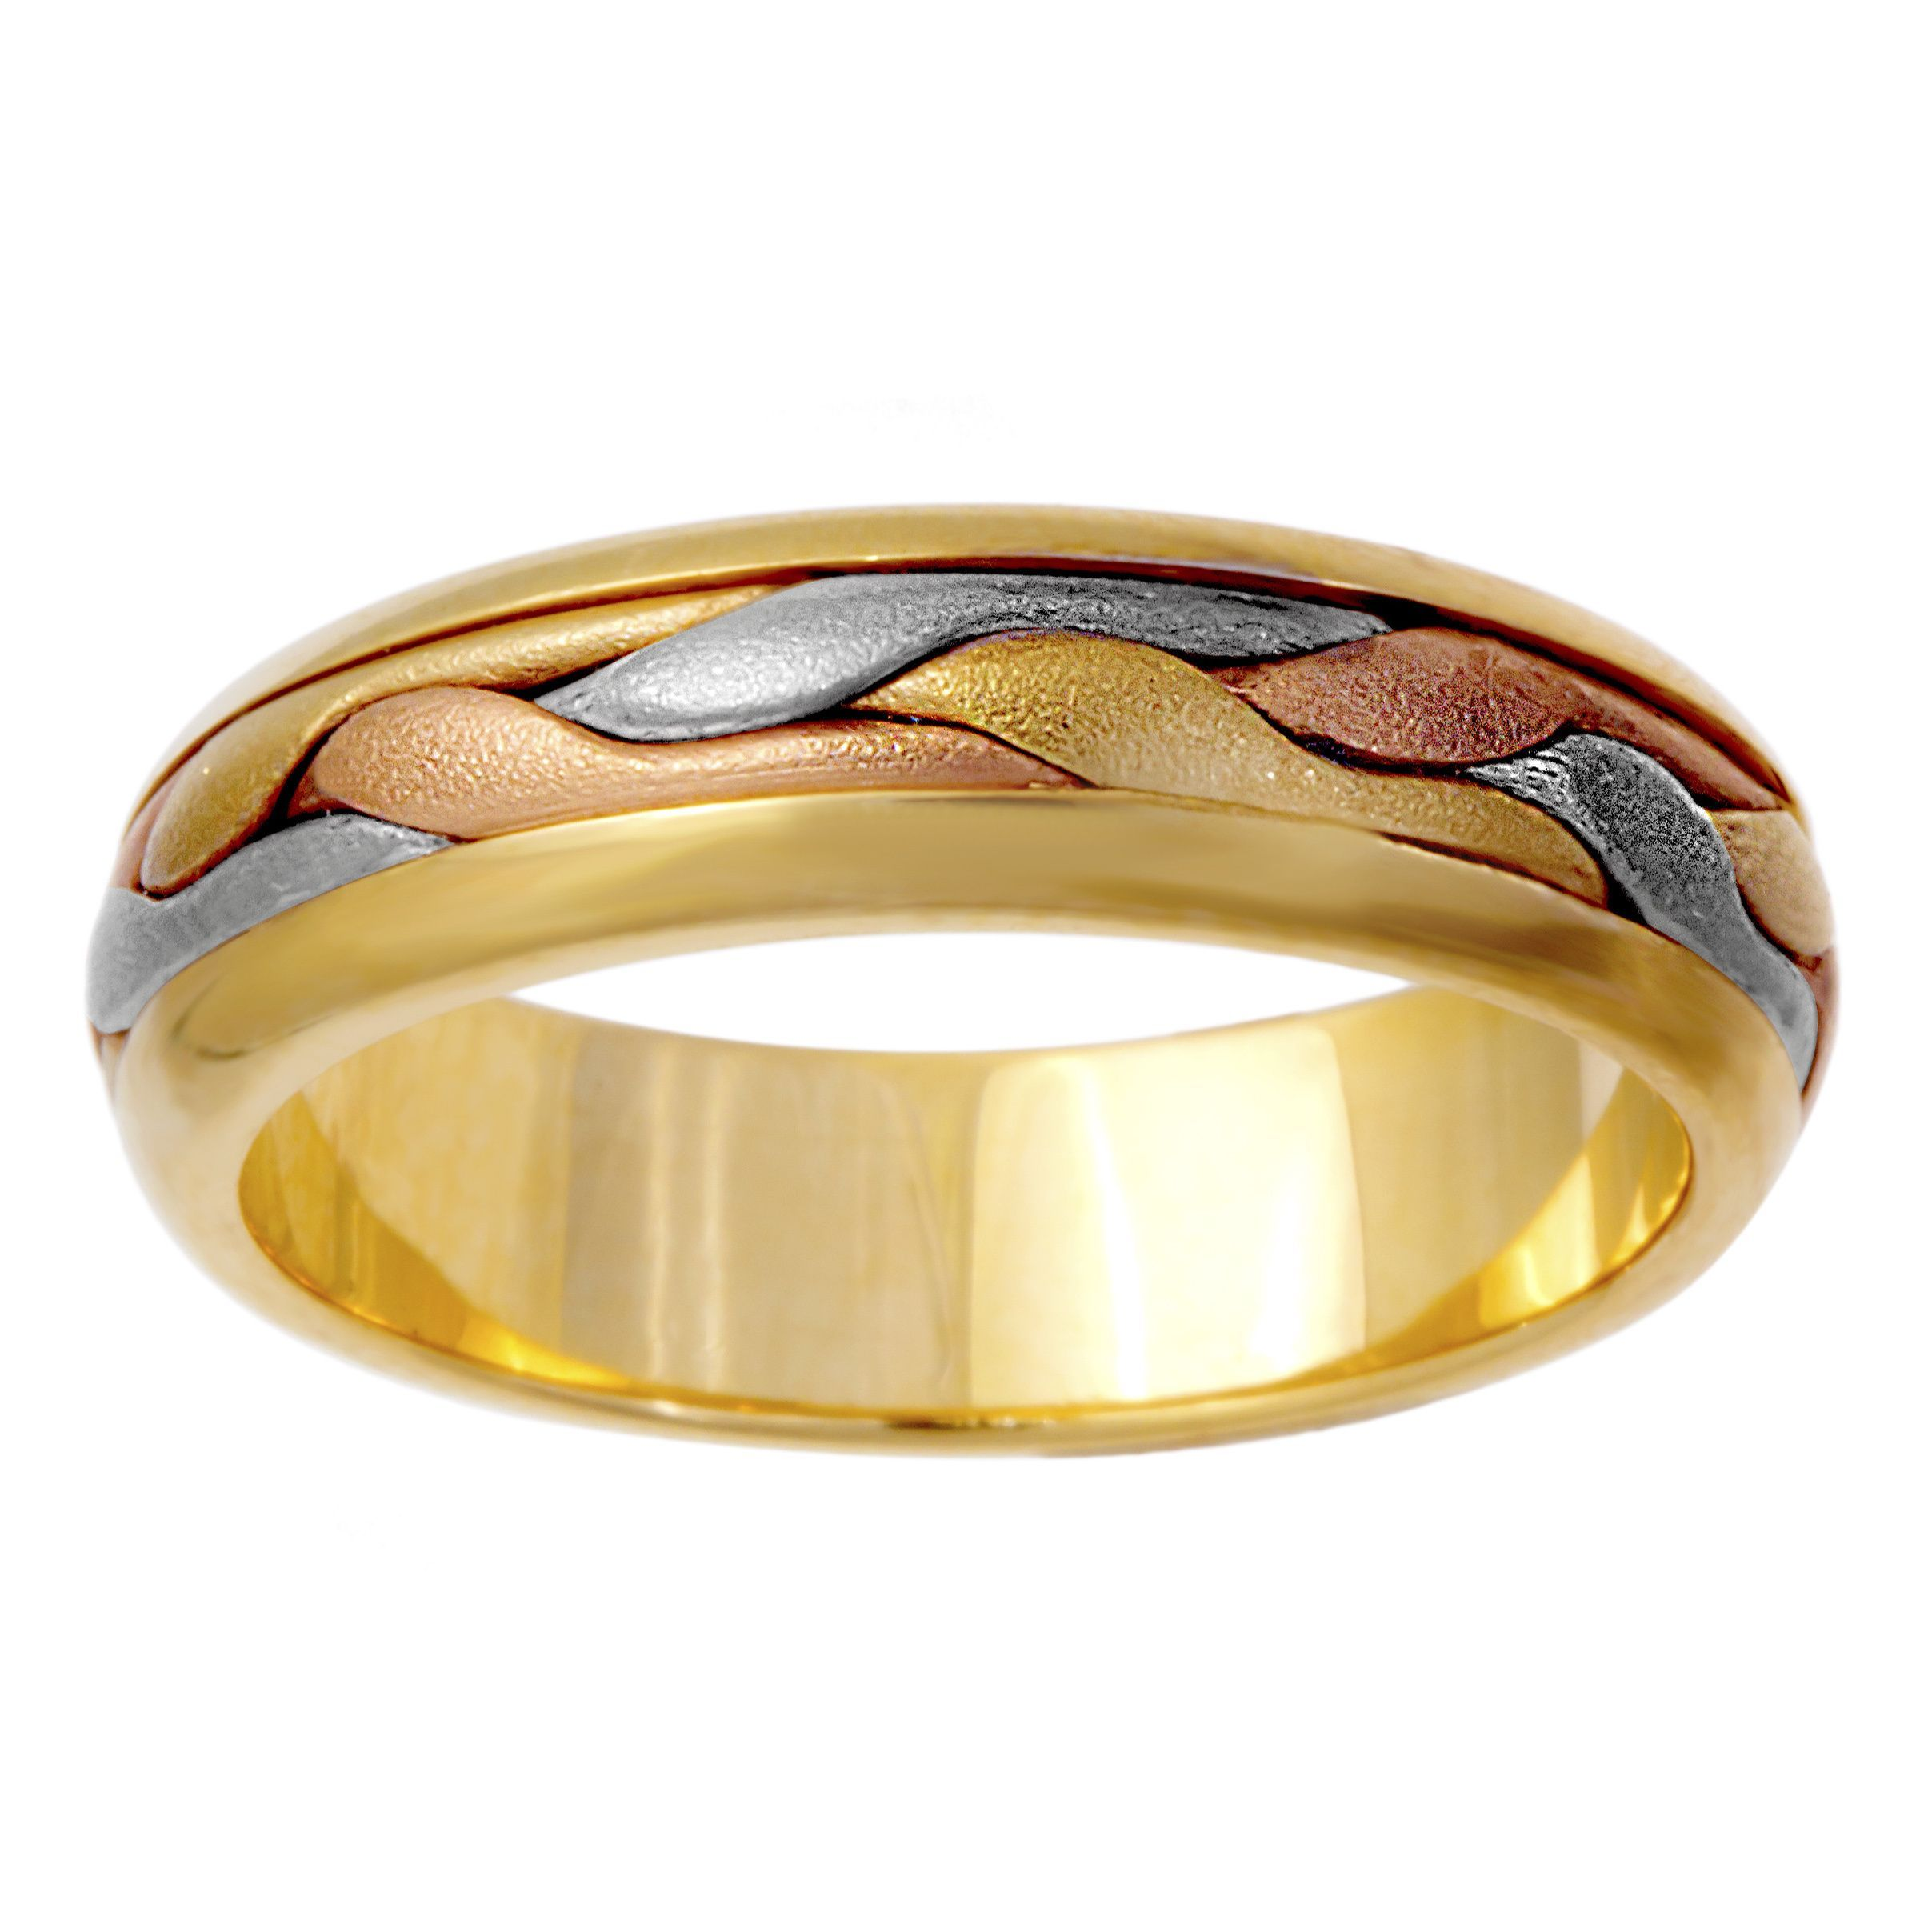 Men S Wedding Band 14k Tri Color Gold Jewelry Click Here For Ring Sizing Guide Mens